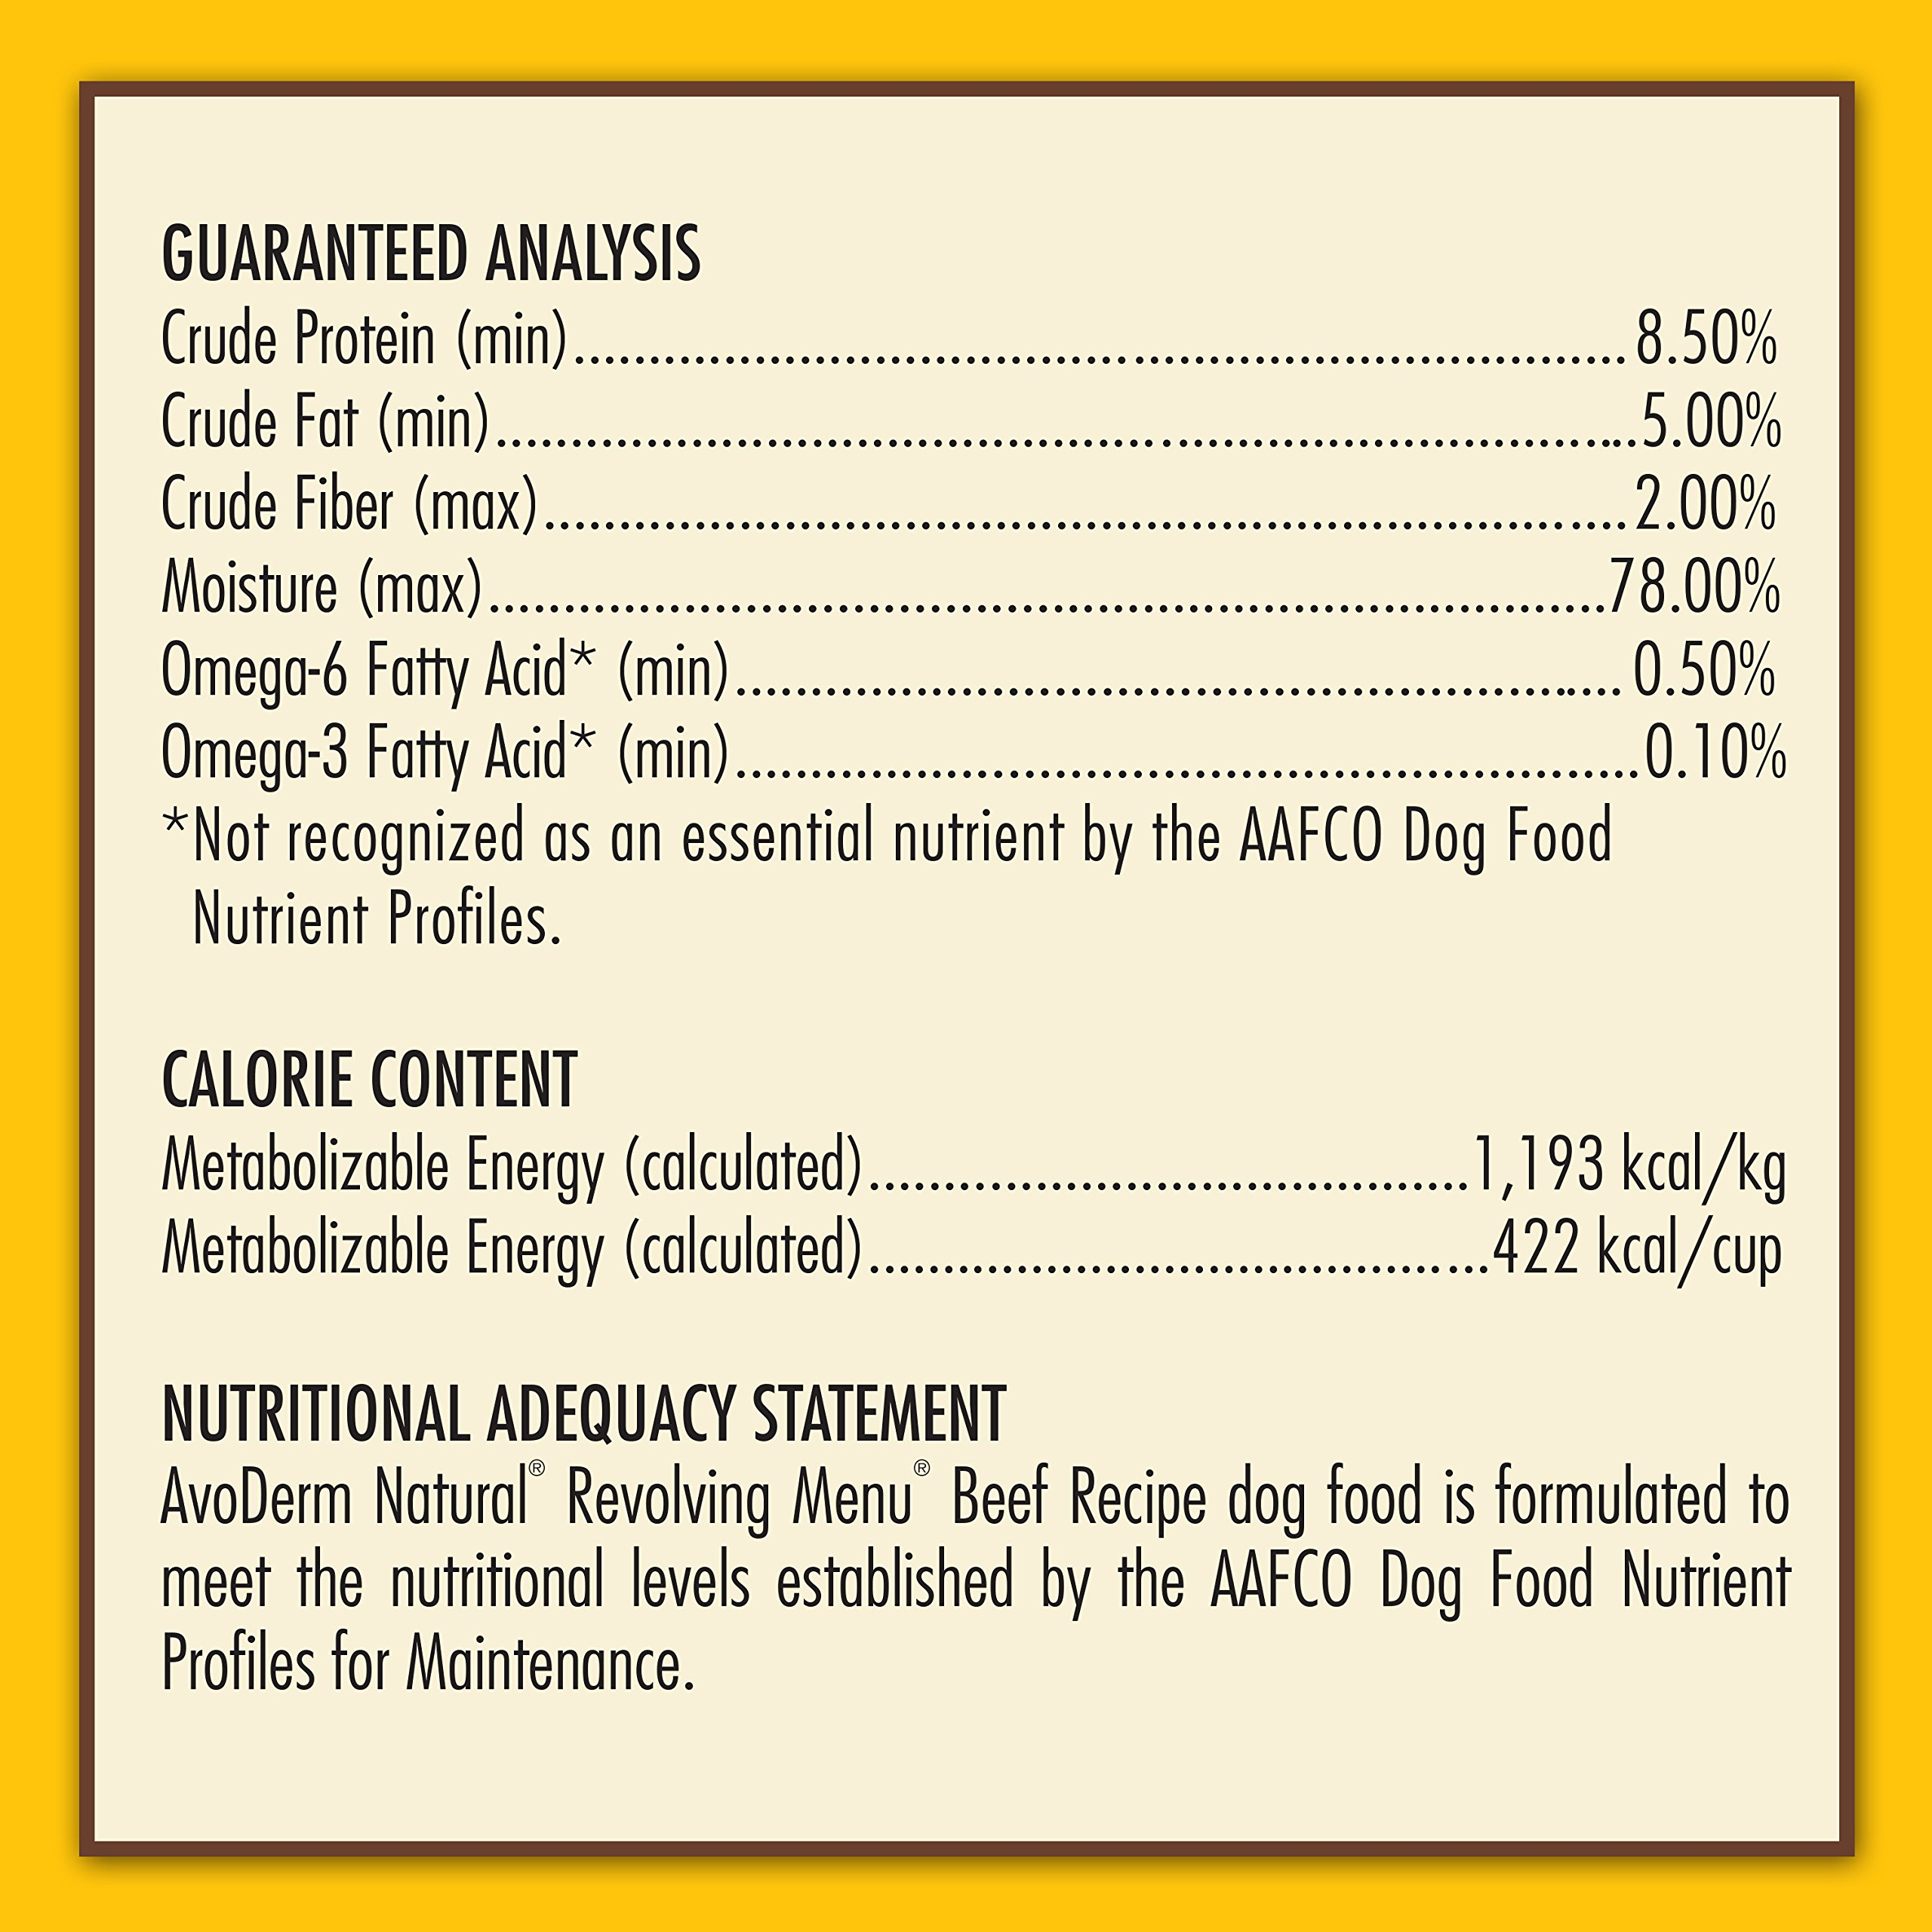 AvoDerm Natural Revolving Menu Beef Recipe Canned Wet Dog Food, 12.5-ounce cans, Case of 12. by AvoDerm (Image #7)